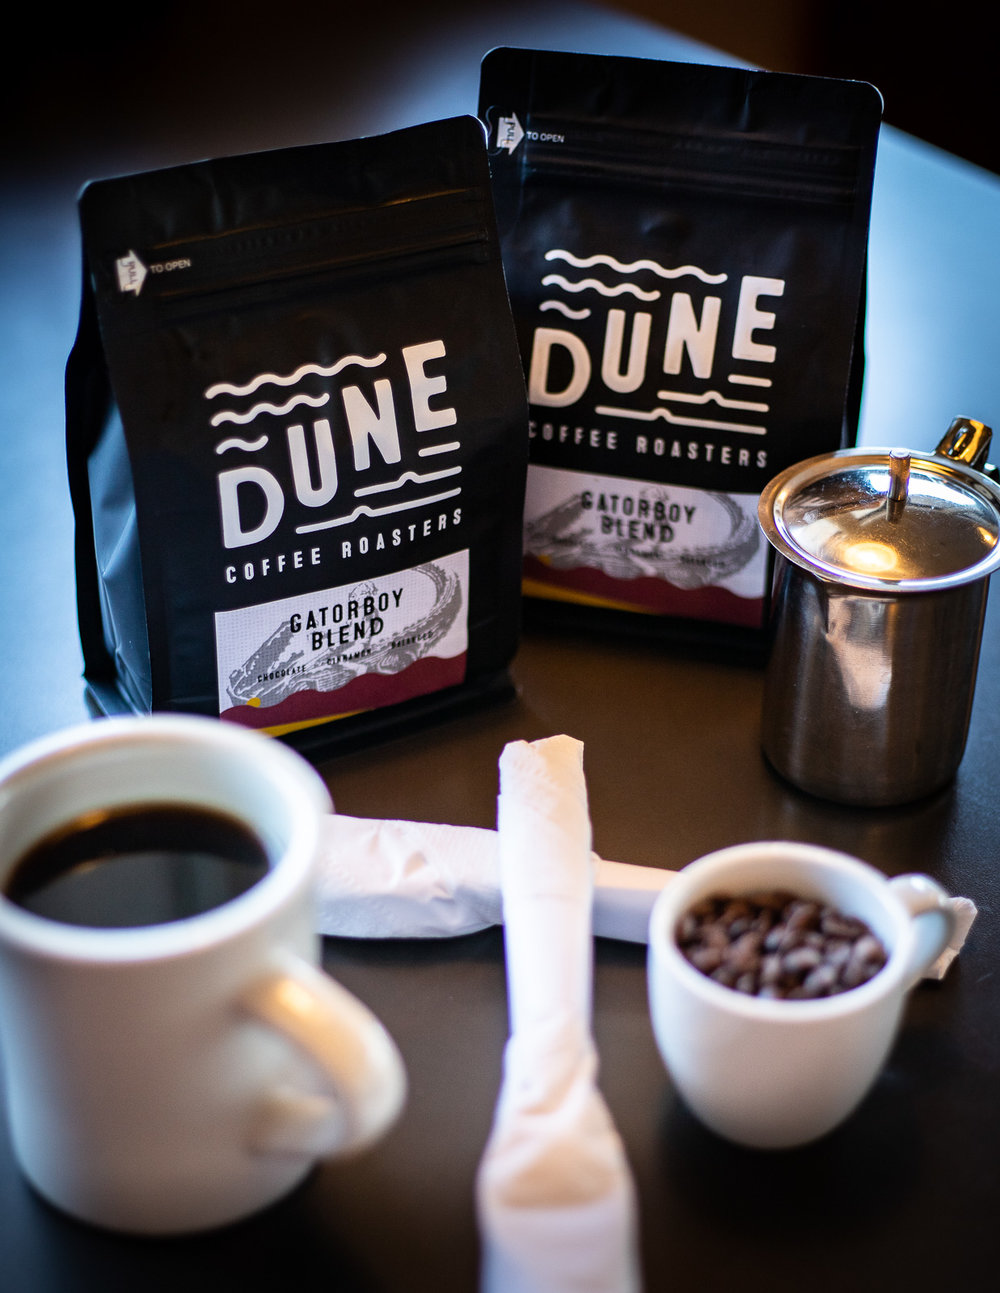 Dune Gator Boy Coffee Sale-5.jpg